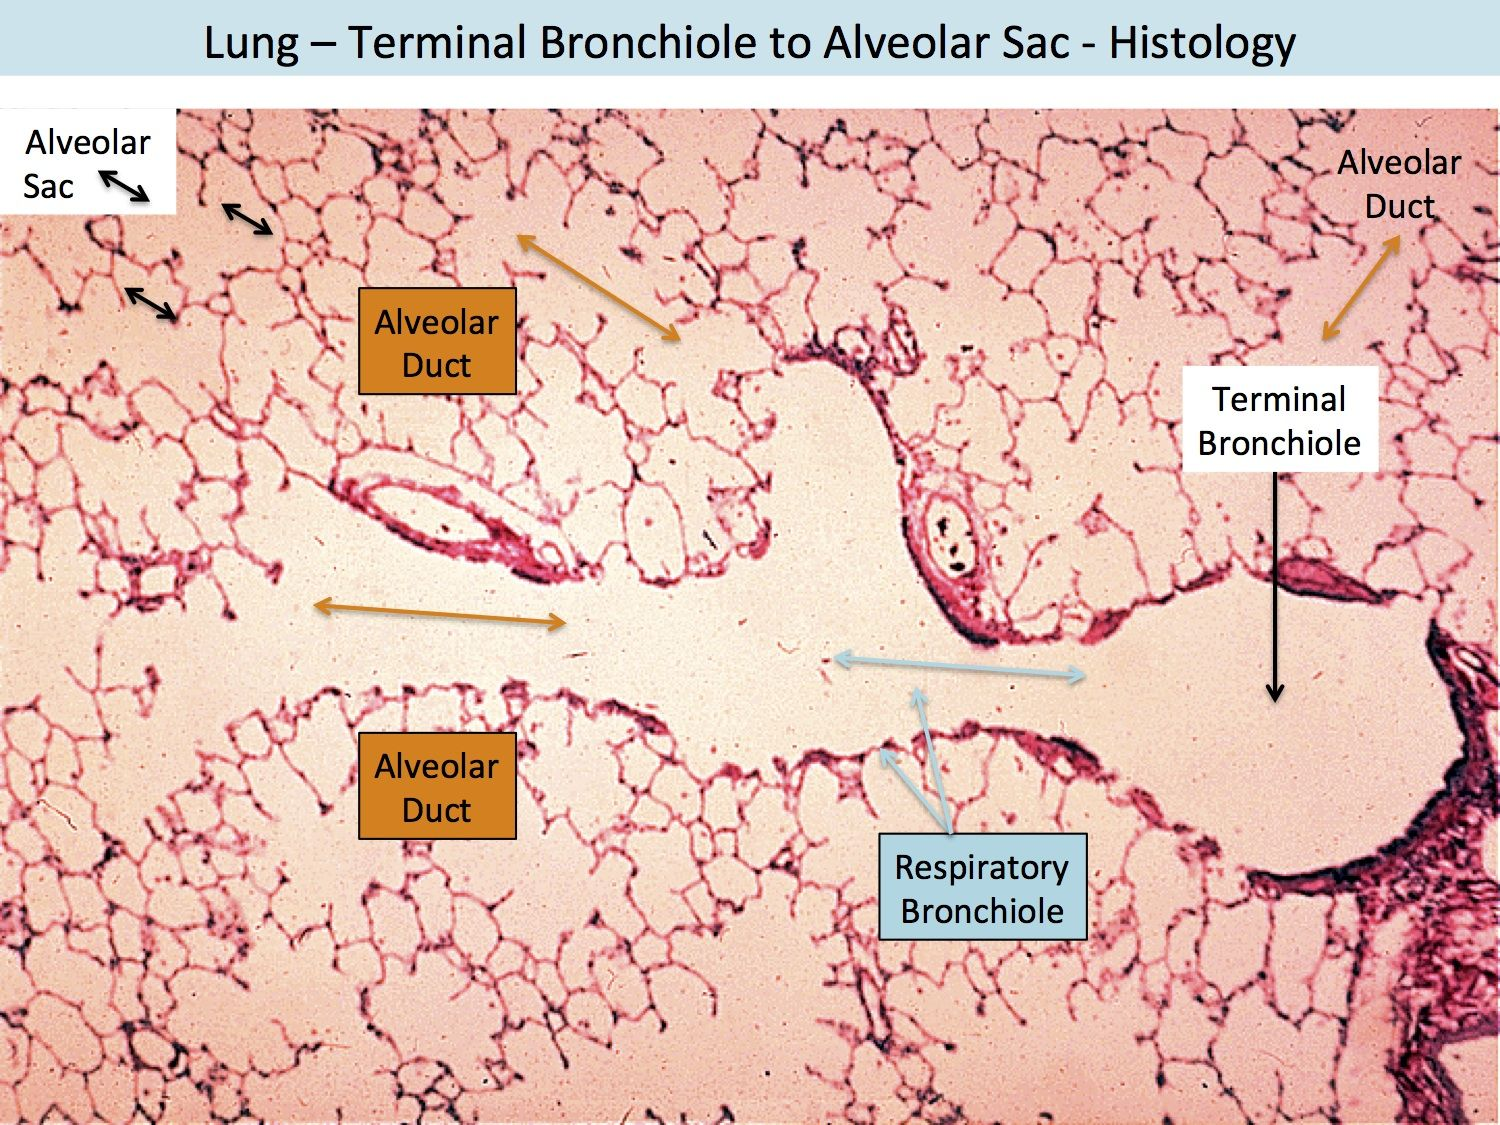 Lung terminal bronchiole to alveolar sac histology histology lung terminal bronchiole to alveolar sac histology ccuart Gallery